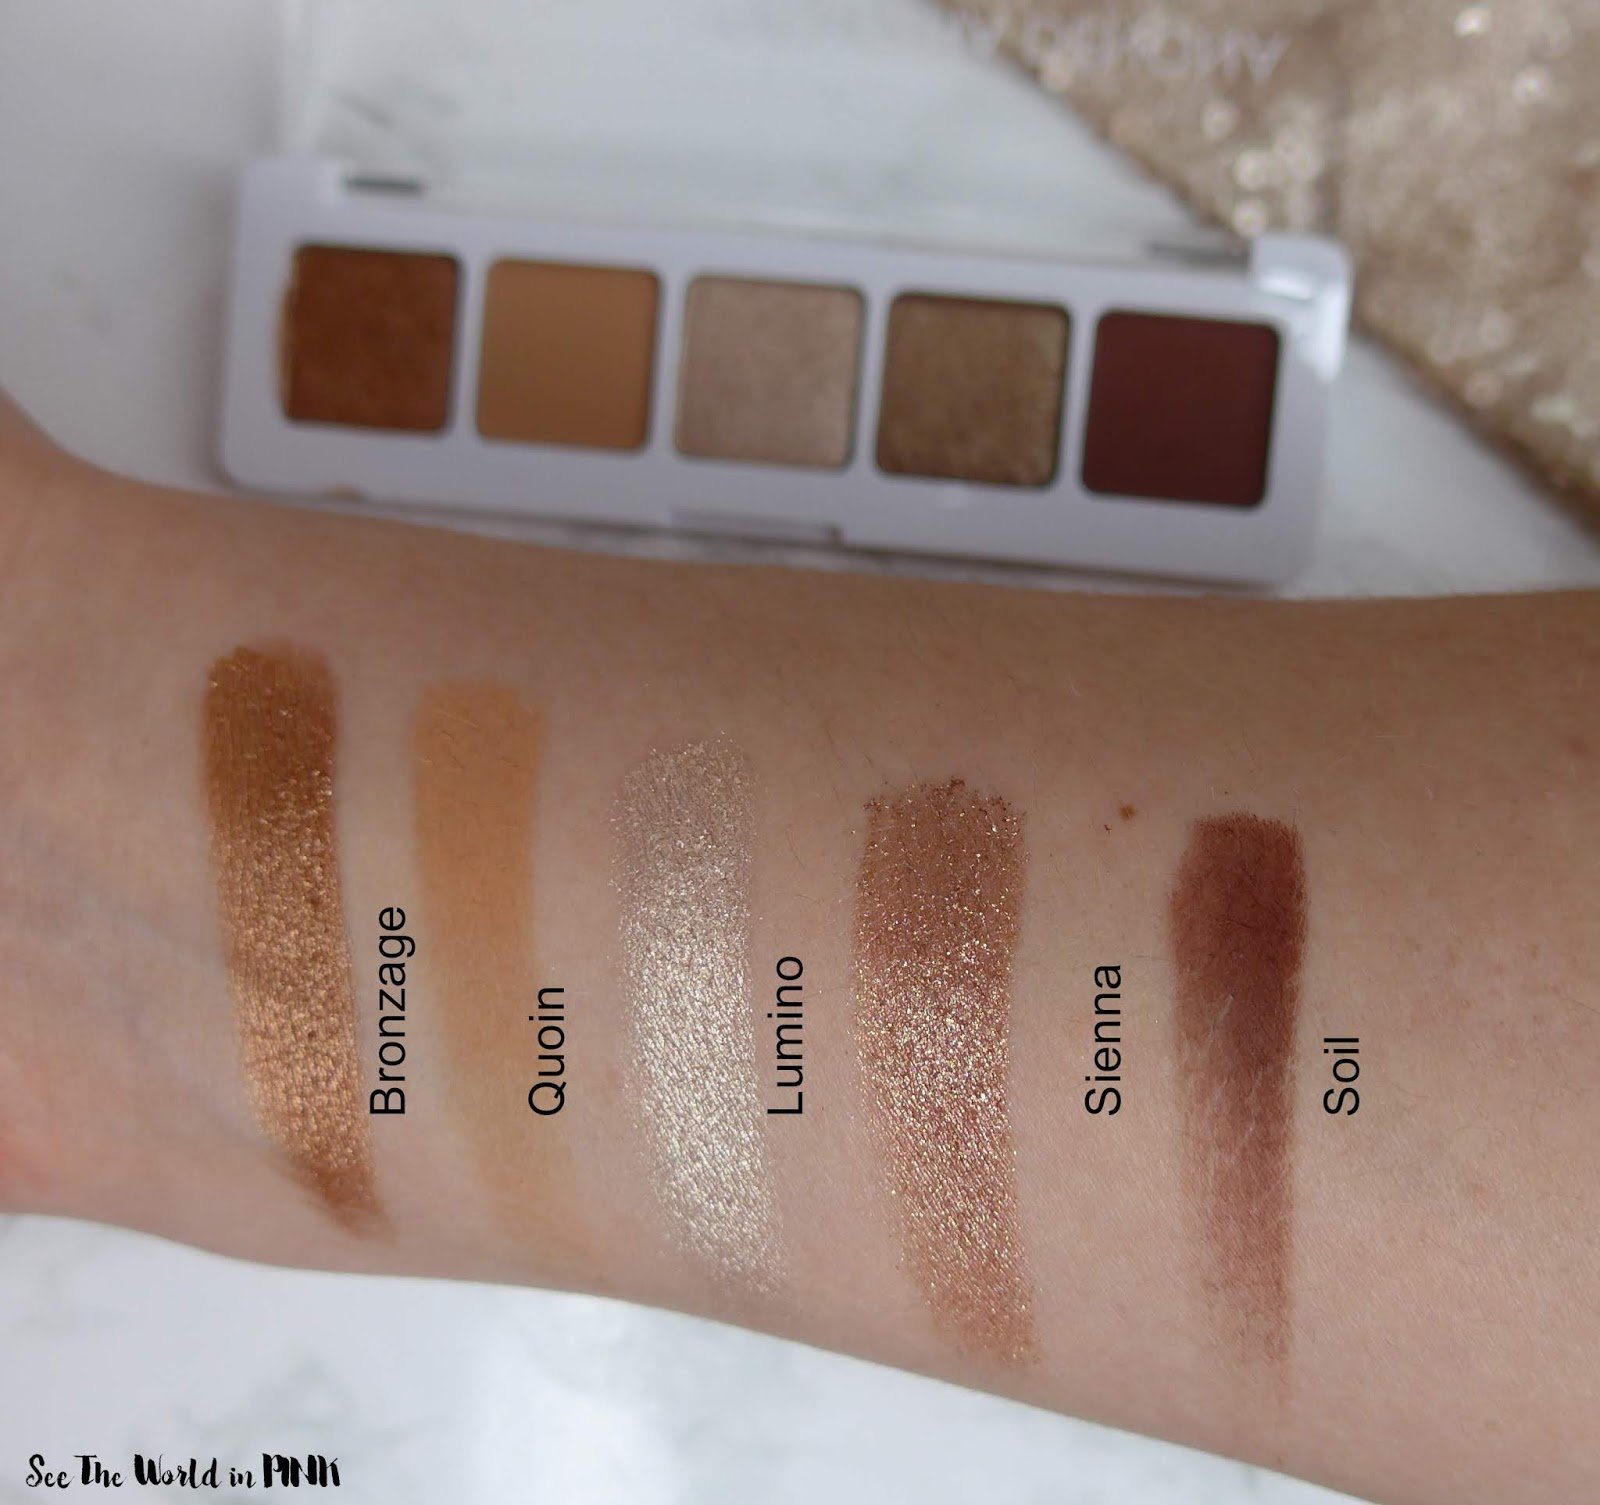 Nude Look Natasha Denona Mini Nude Eyeshadow Palette - Swatches, Review And Look! | See The World In Pink